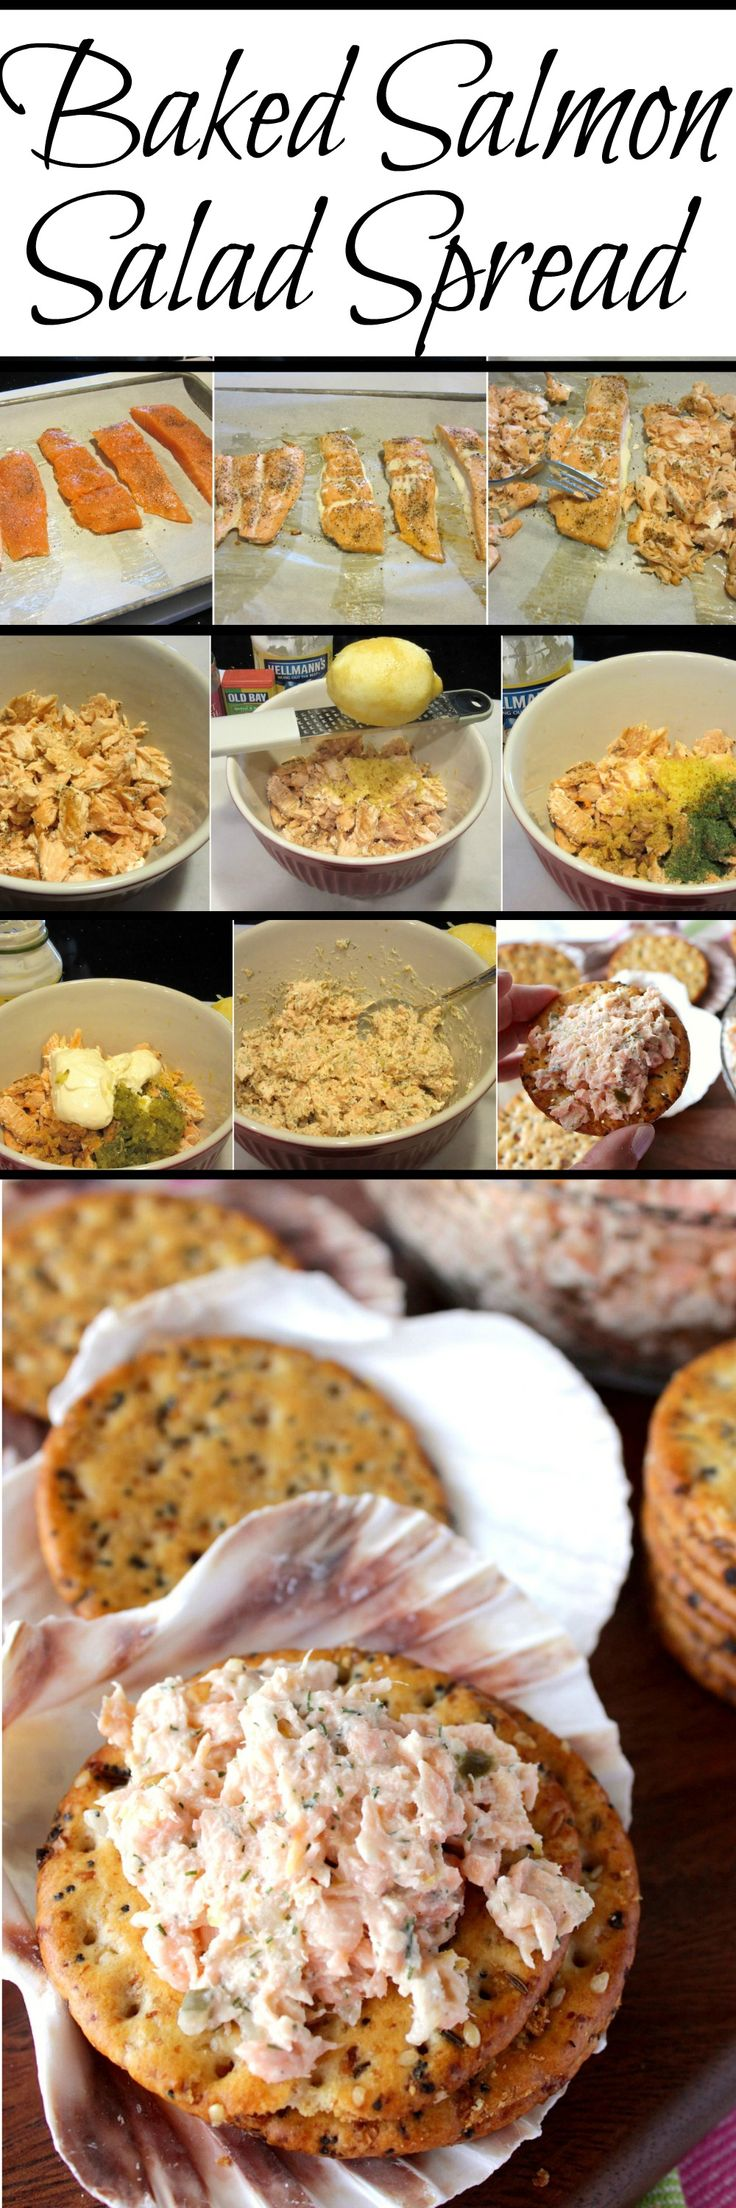 Baked Salmon Salad Spread is so versatile you can use it as an ...